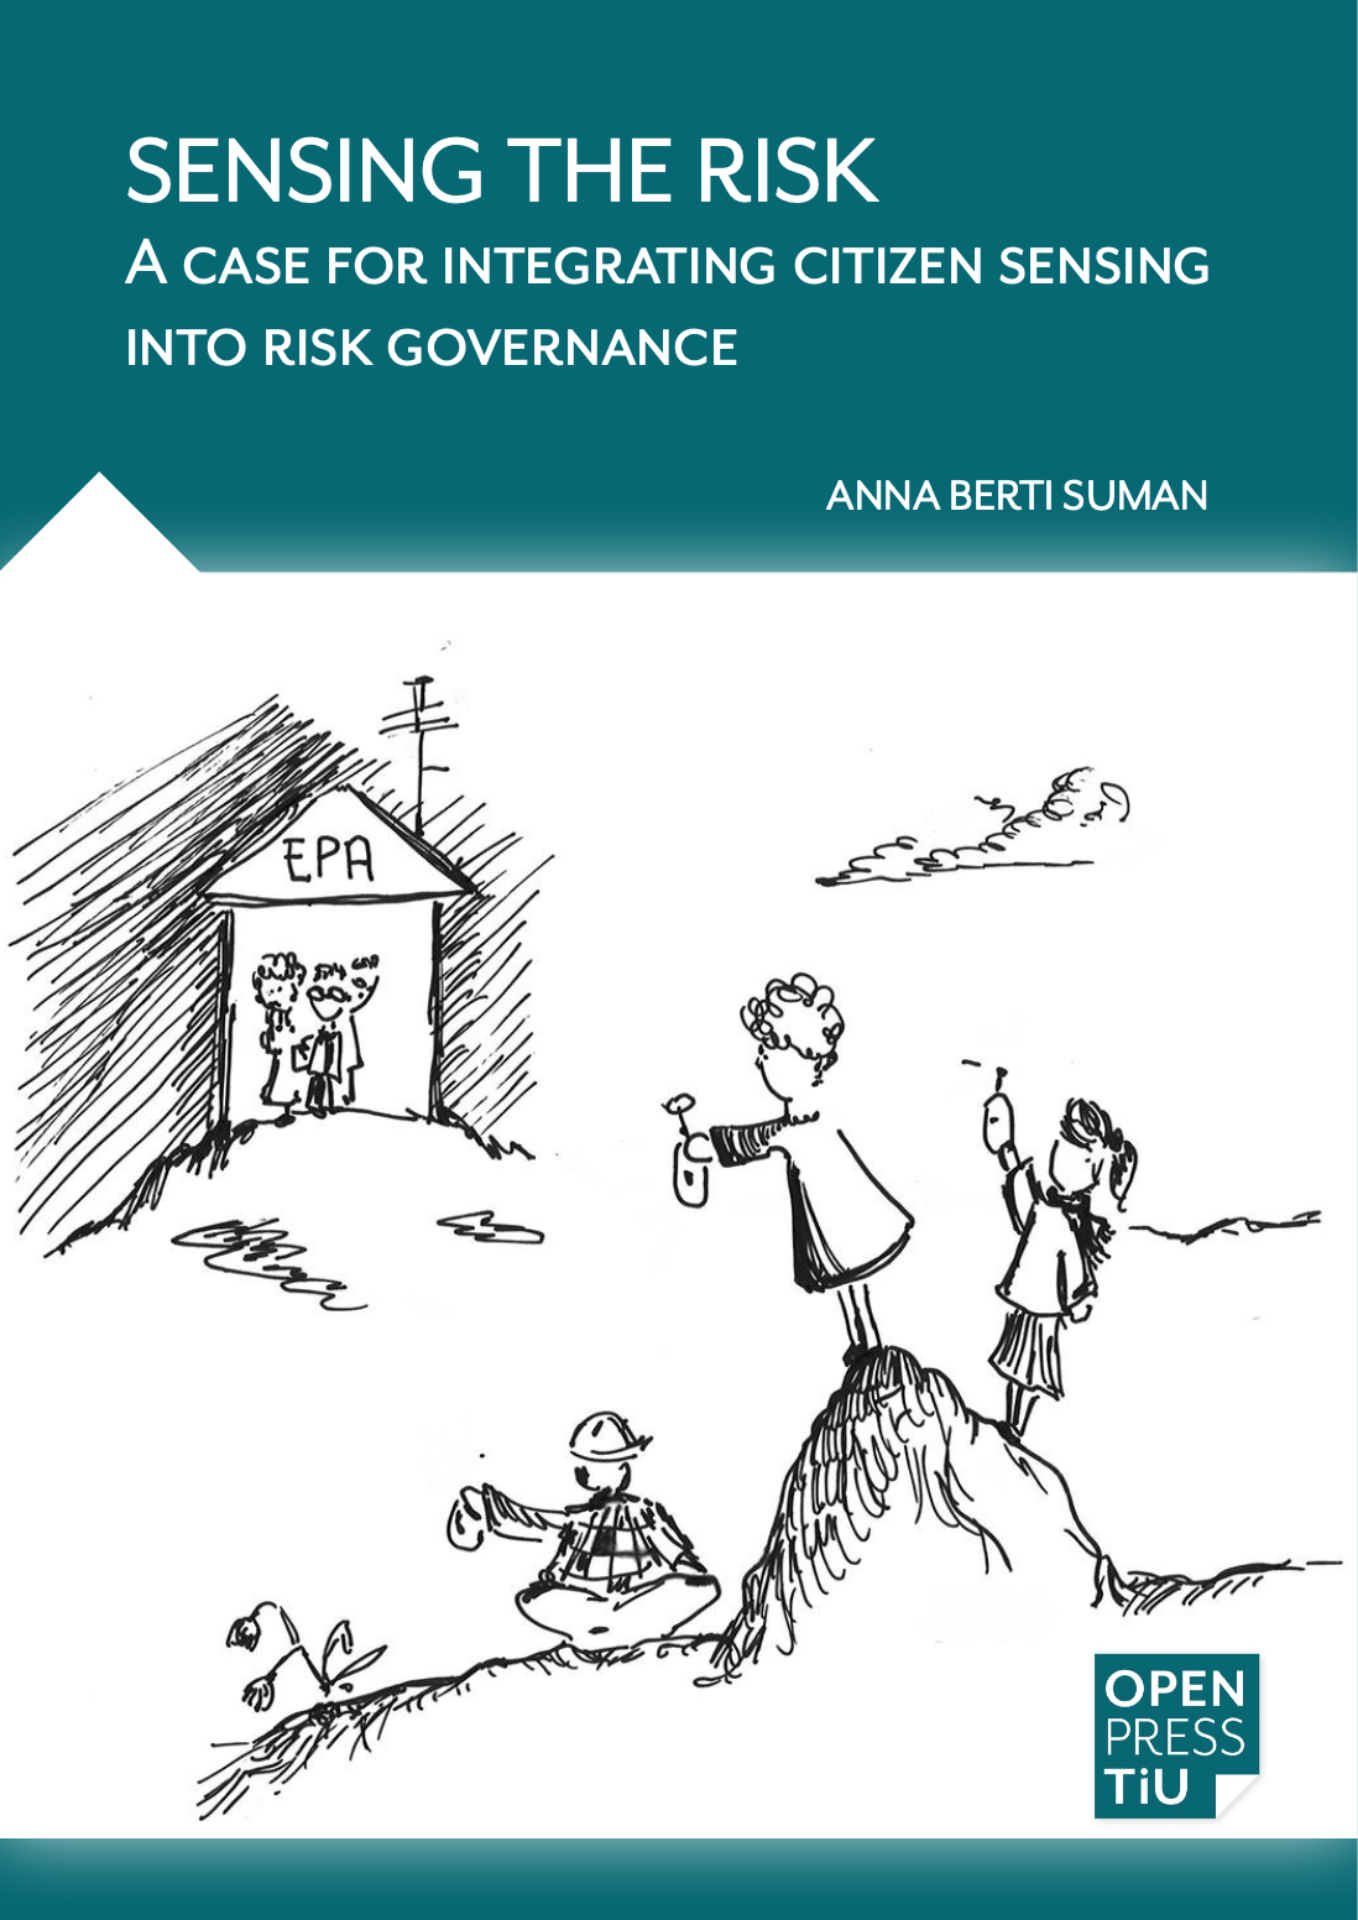 Sensing the risk, book cover